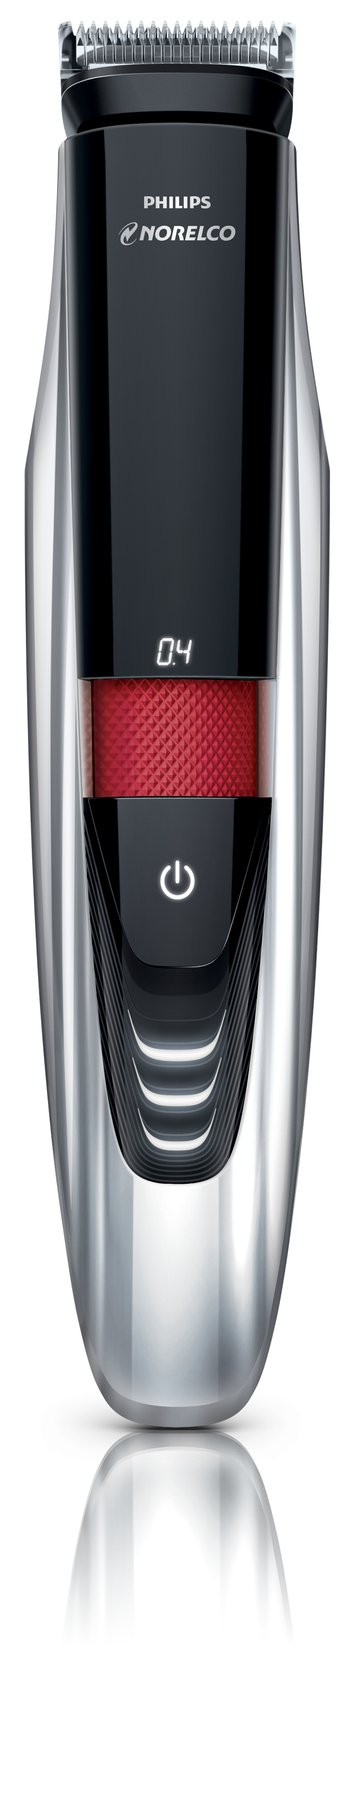 Philips Norelco BeardTrimmer 9100 with laser guide for beard stubble and mustache (Model # BT9285/41)